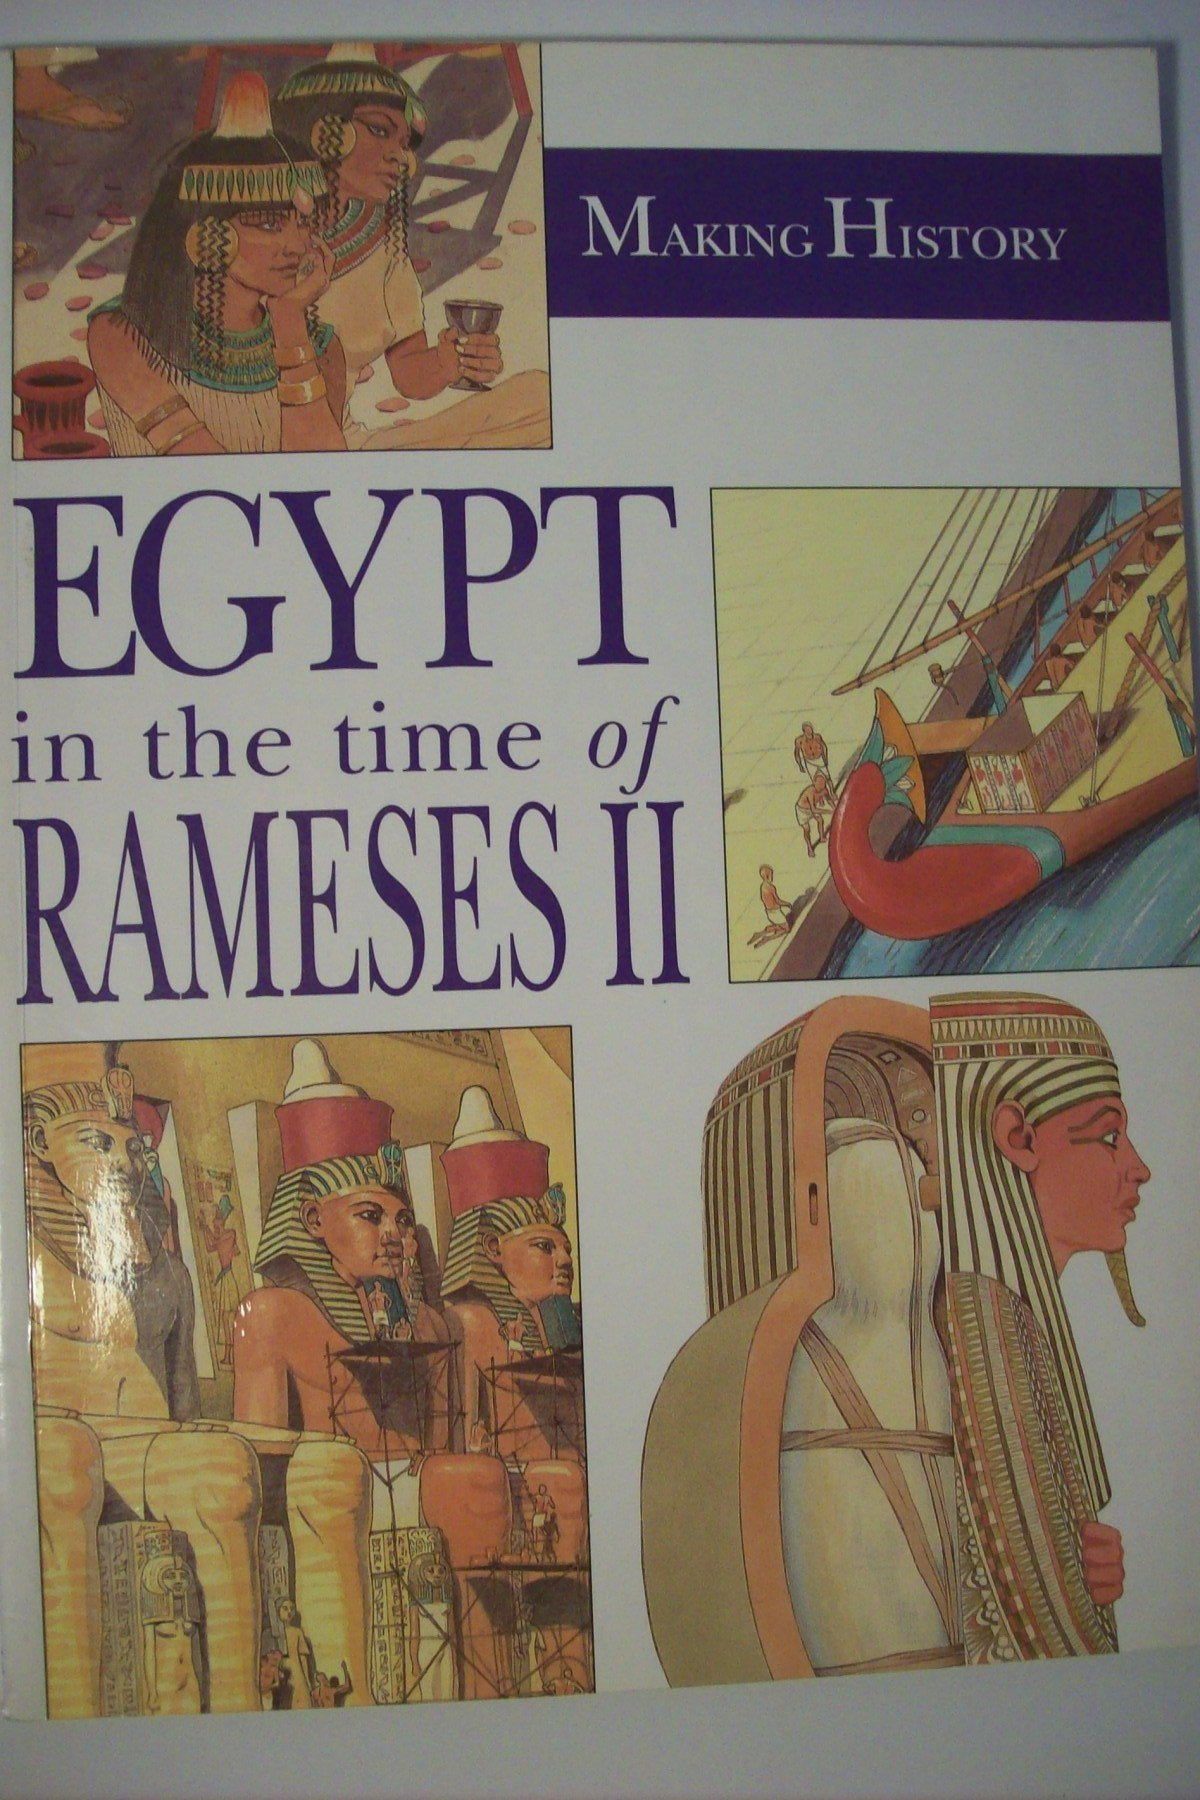 egypt-in-the-time-of-rameses-ii-making-history